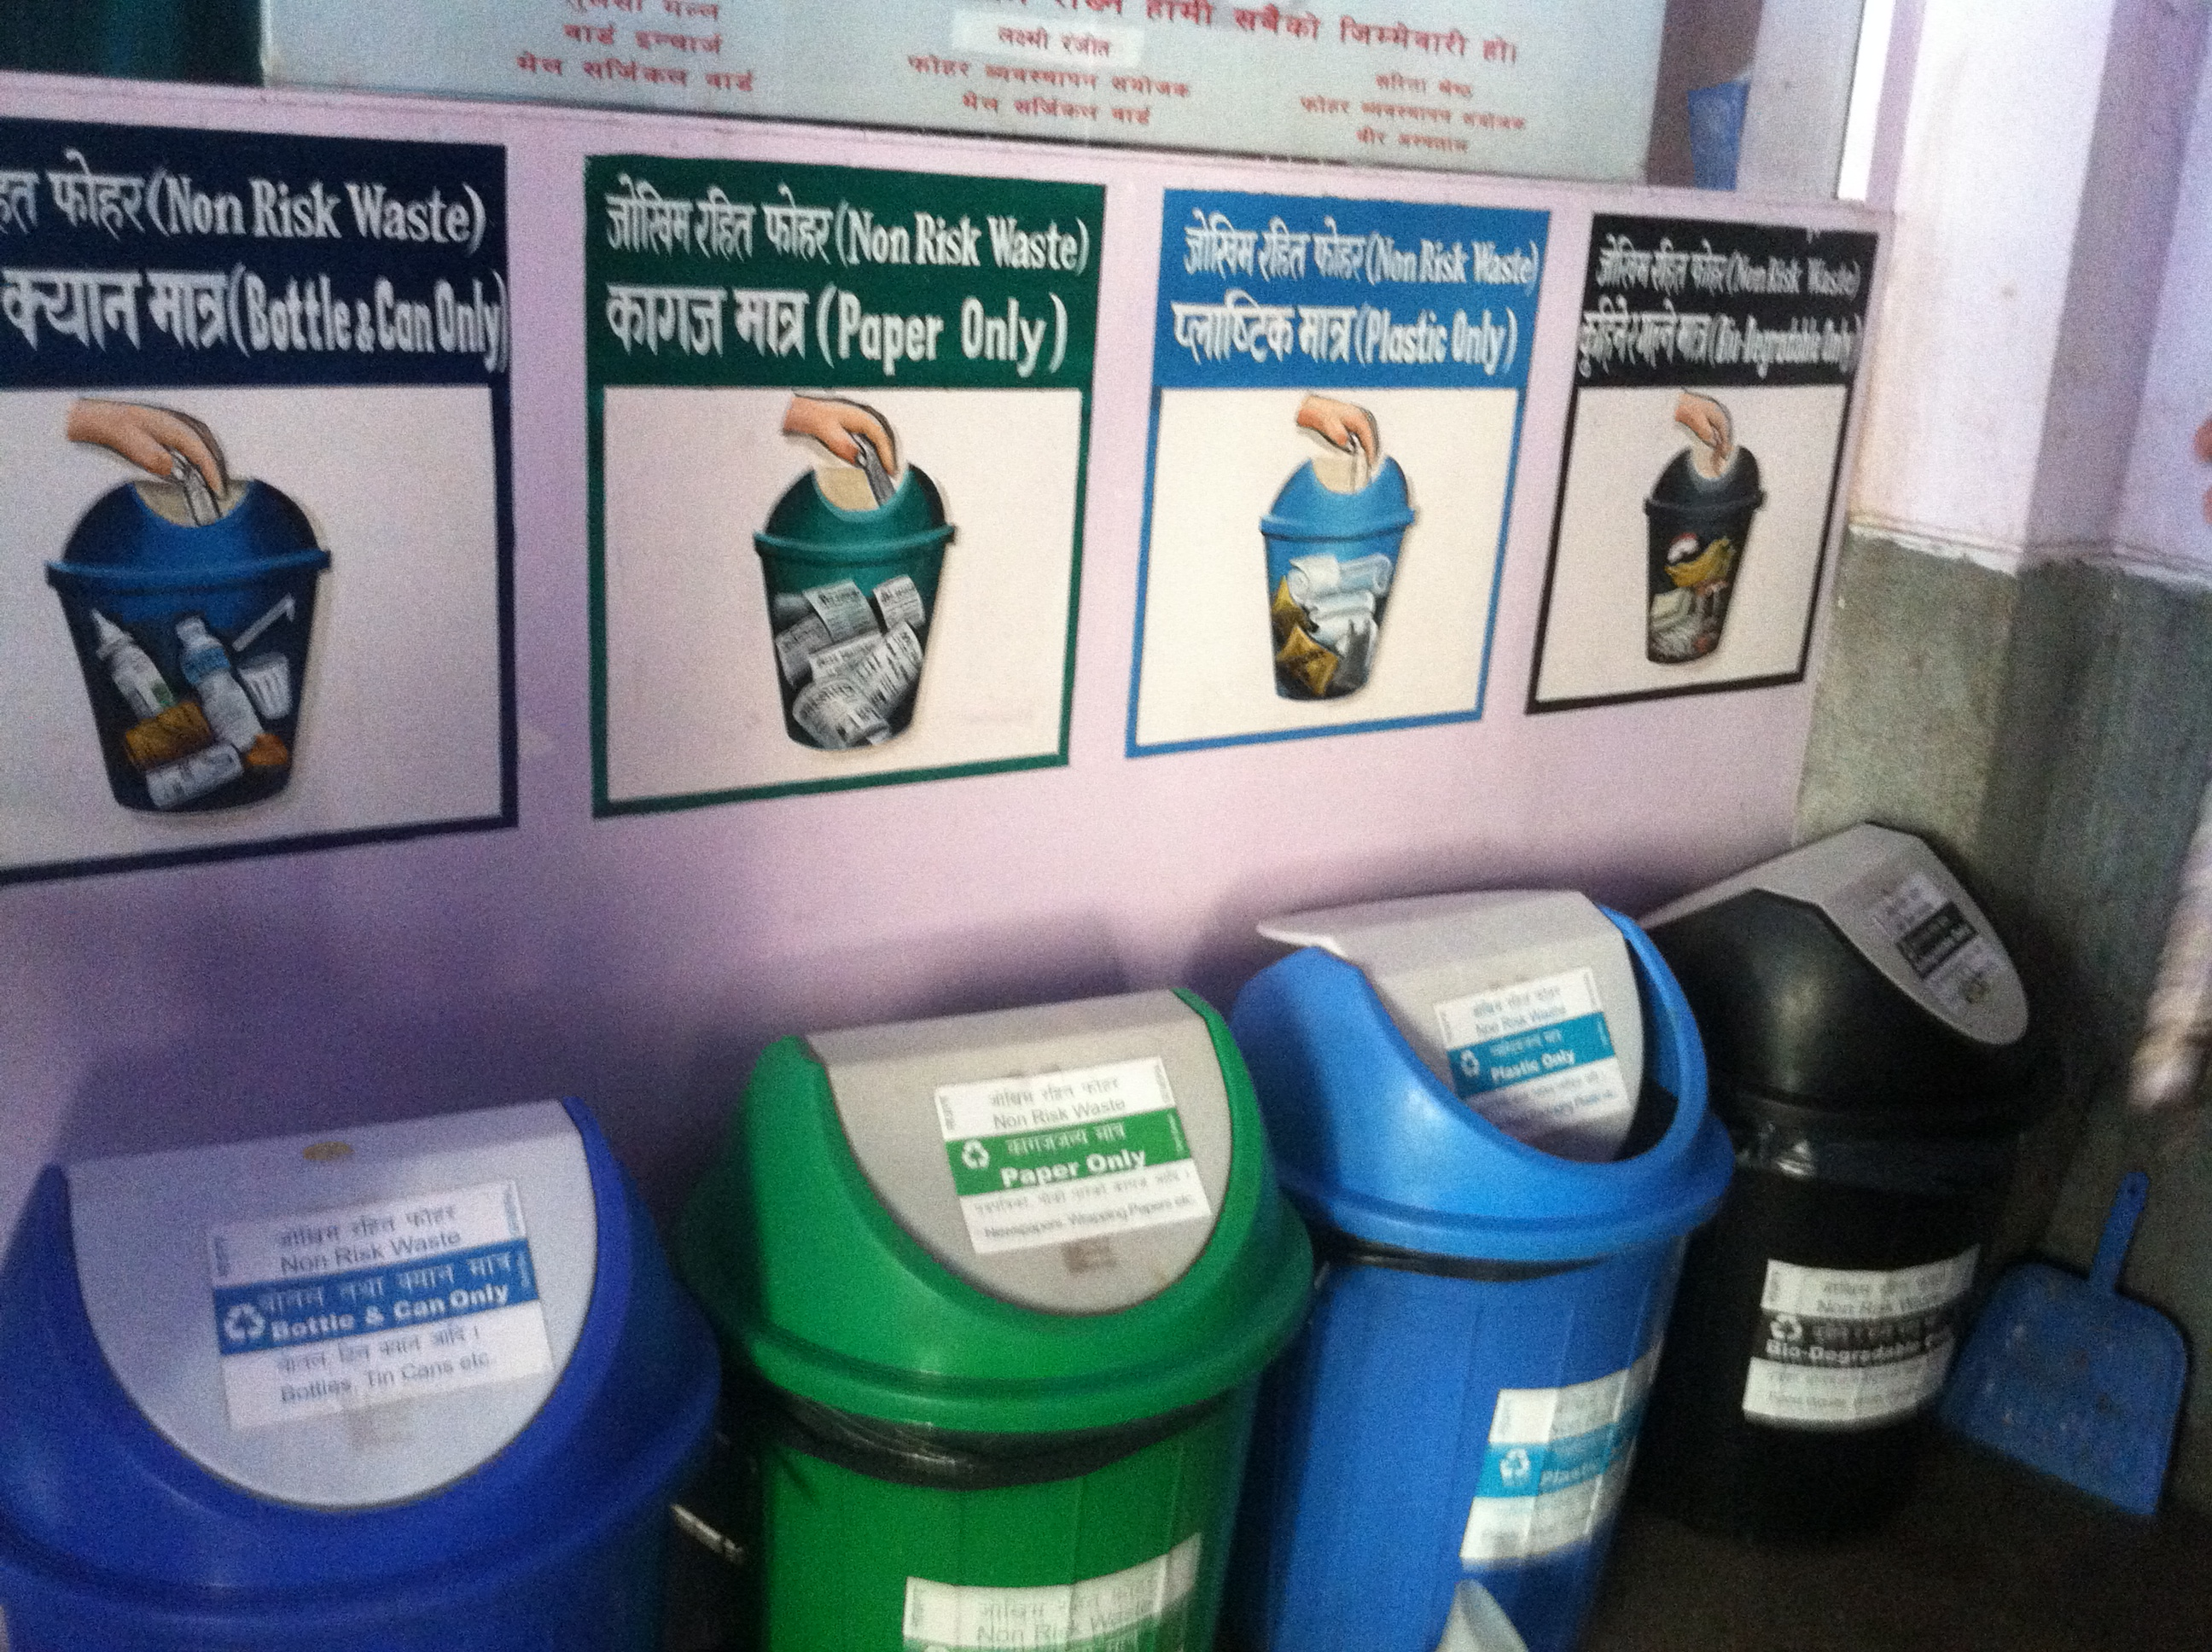 irin eco friendly medical waste disposal in bir hospital in s capital of kathmandu sorts medical waste for safe disposal in an effort